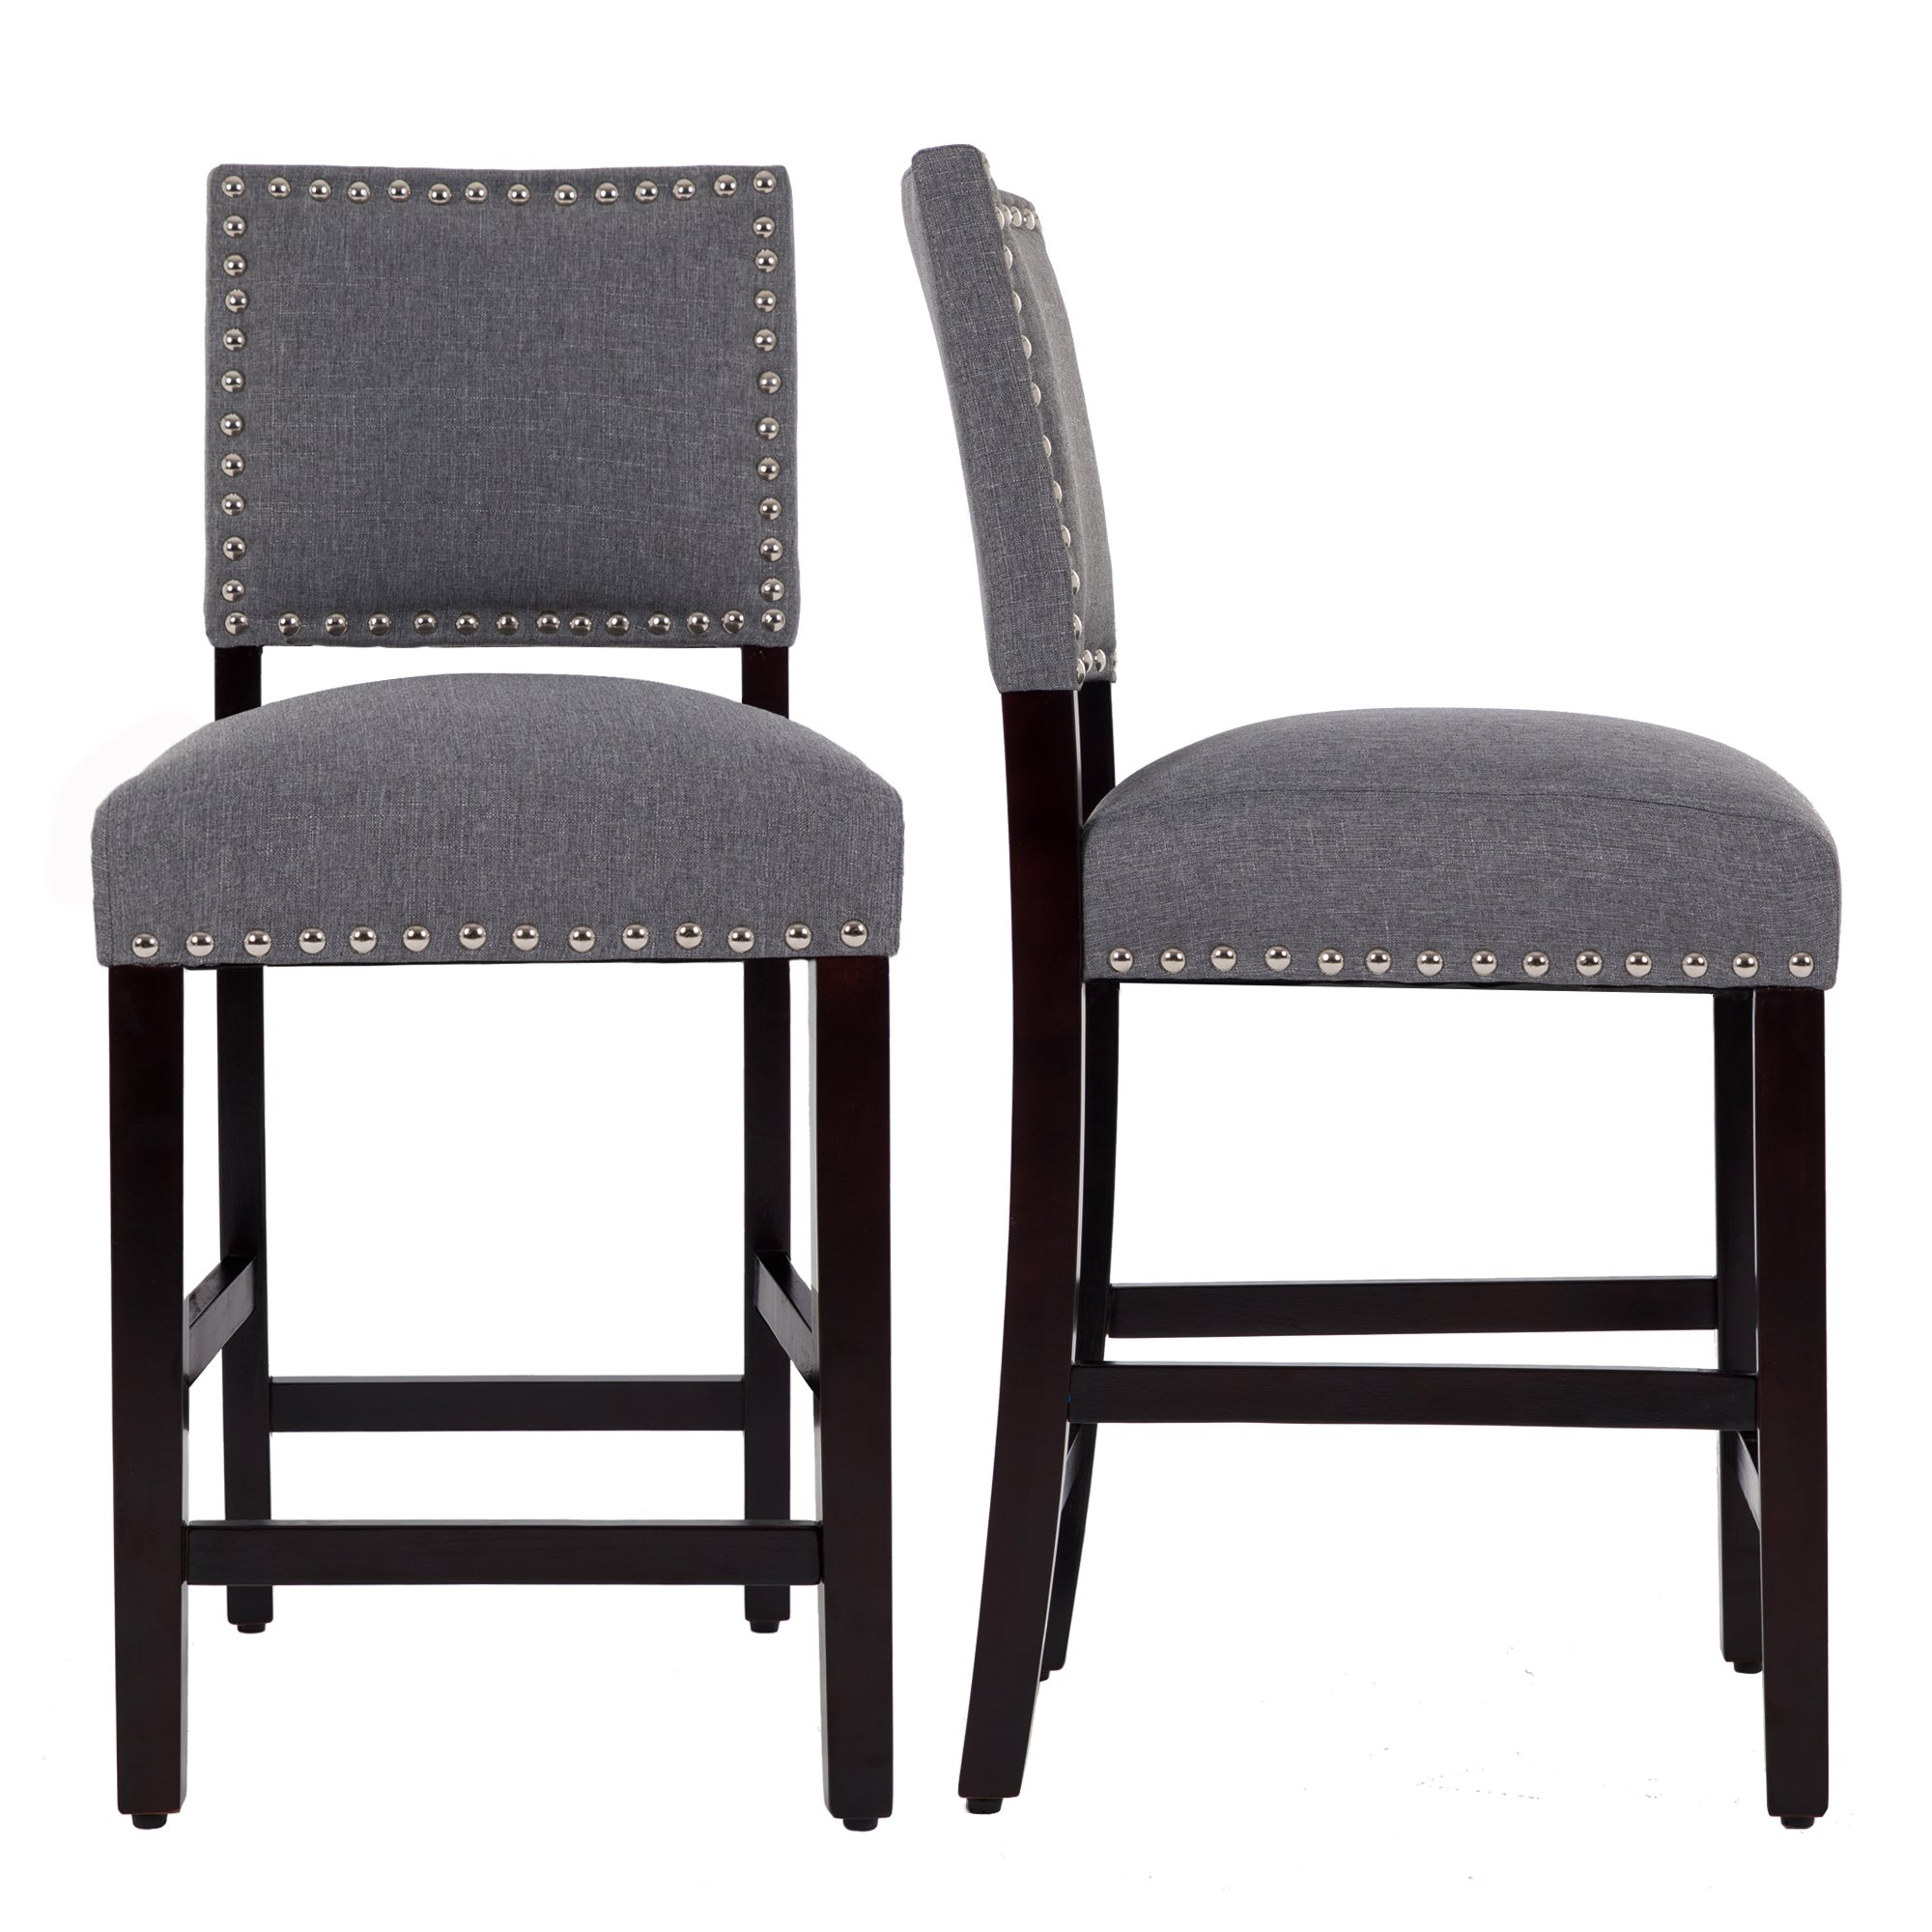 DAGONHIL 24 Inches Counter Height Bar Chair with Black Solid Wood Legs-Set of 2 (Gray)